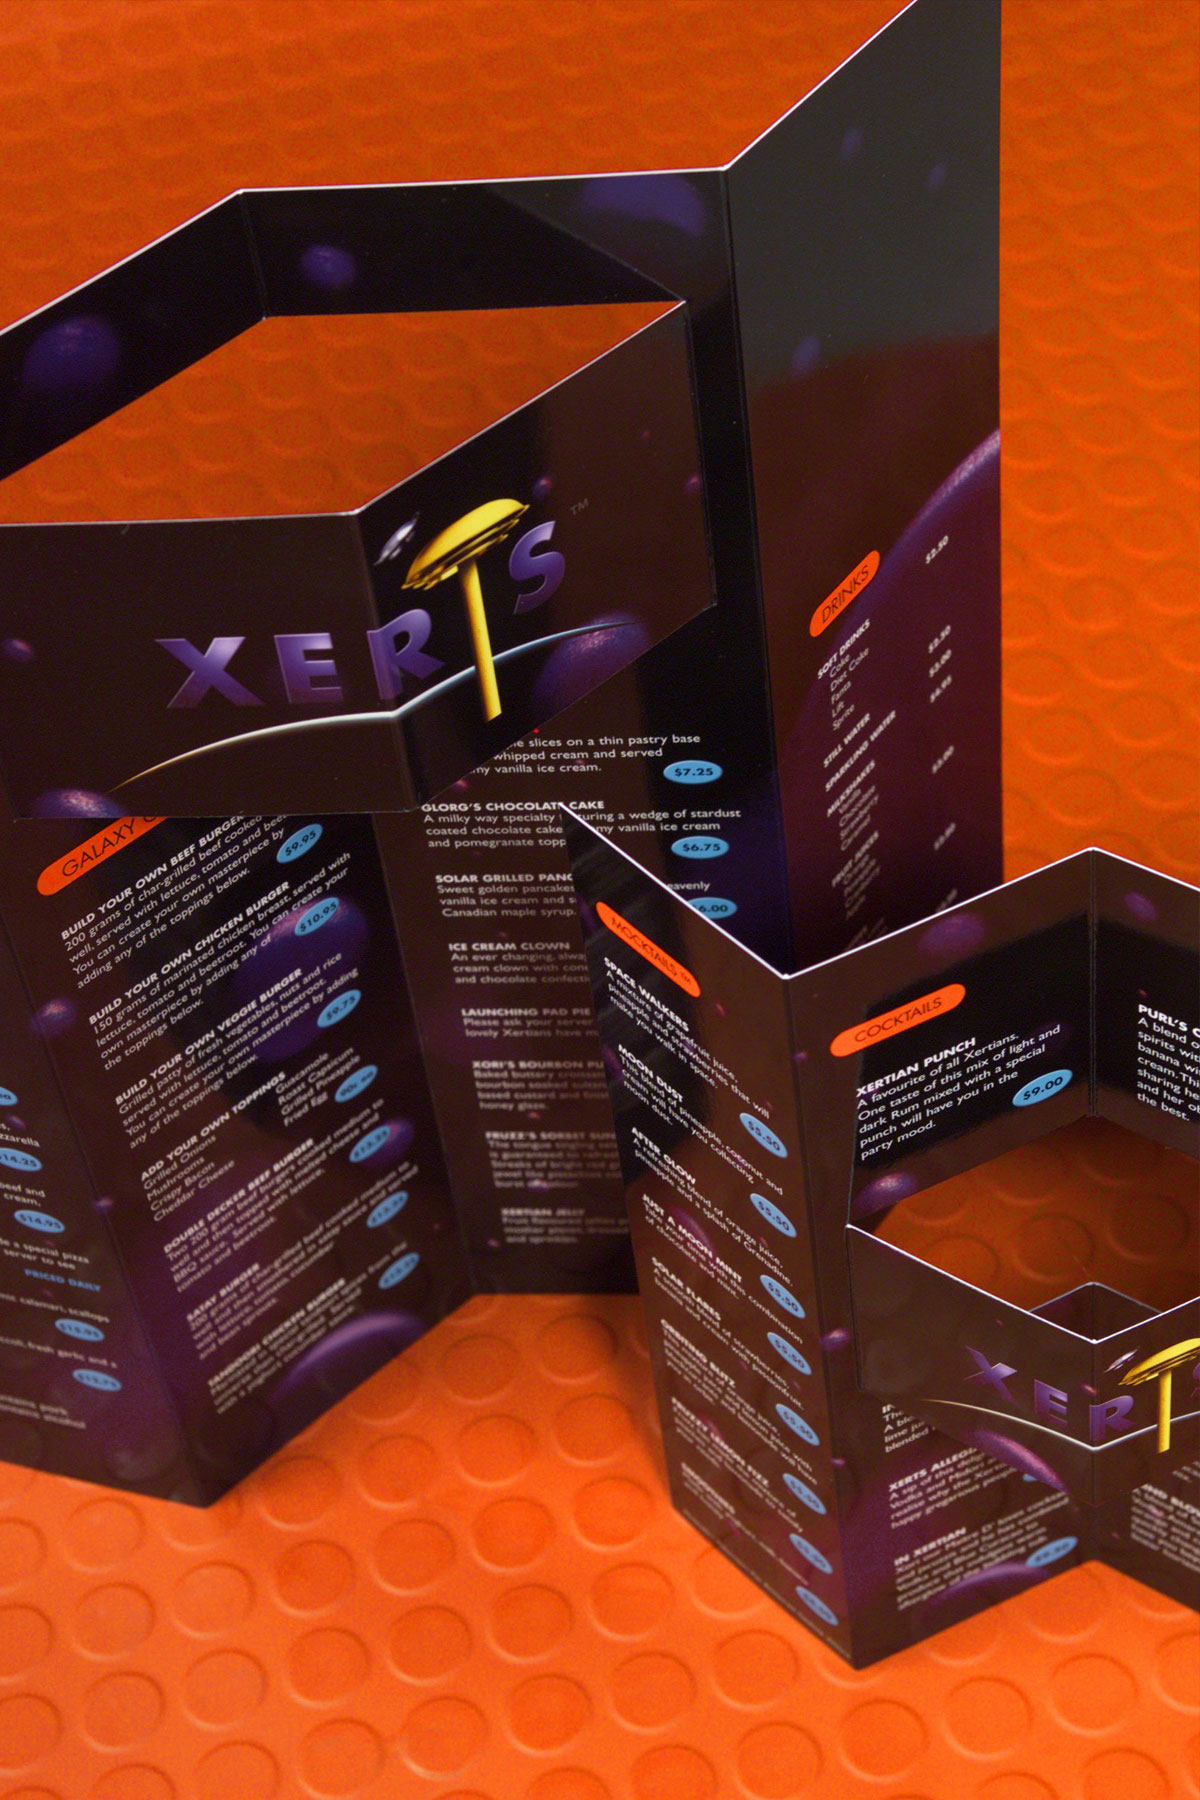 Menus were also designed by the tectvs team